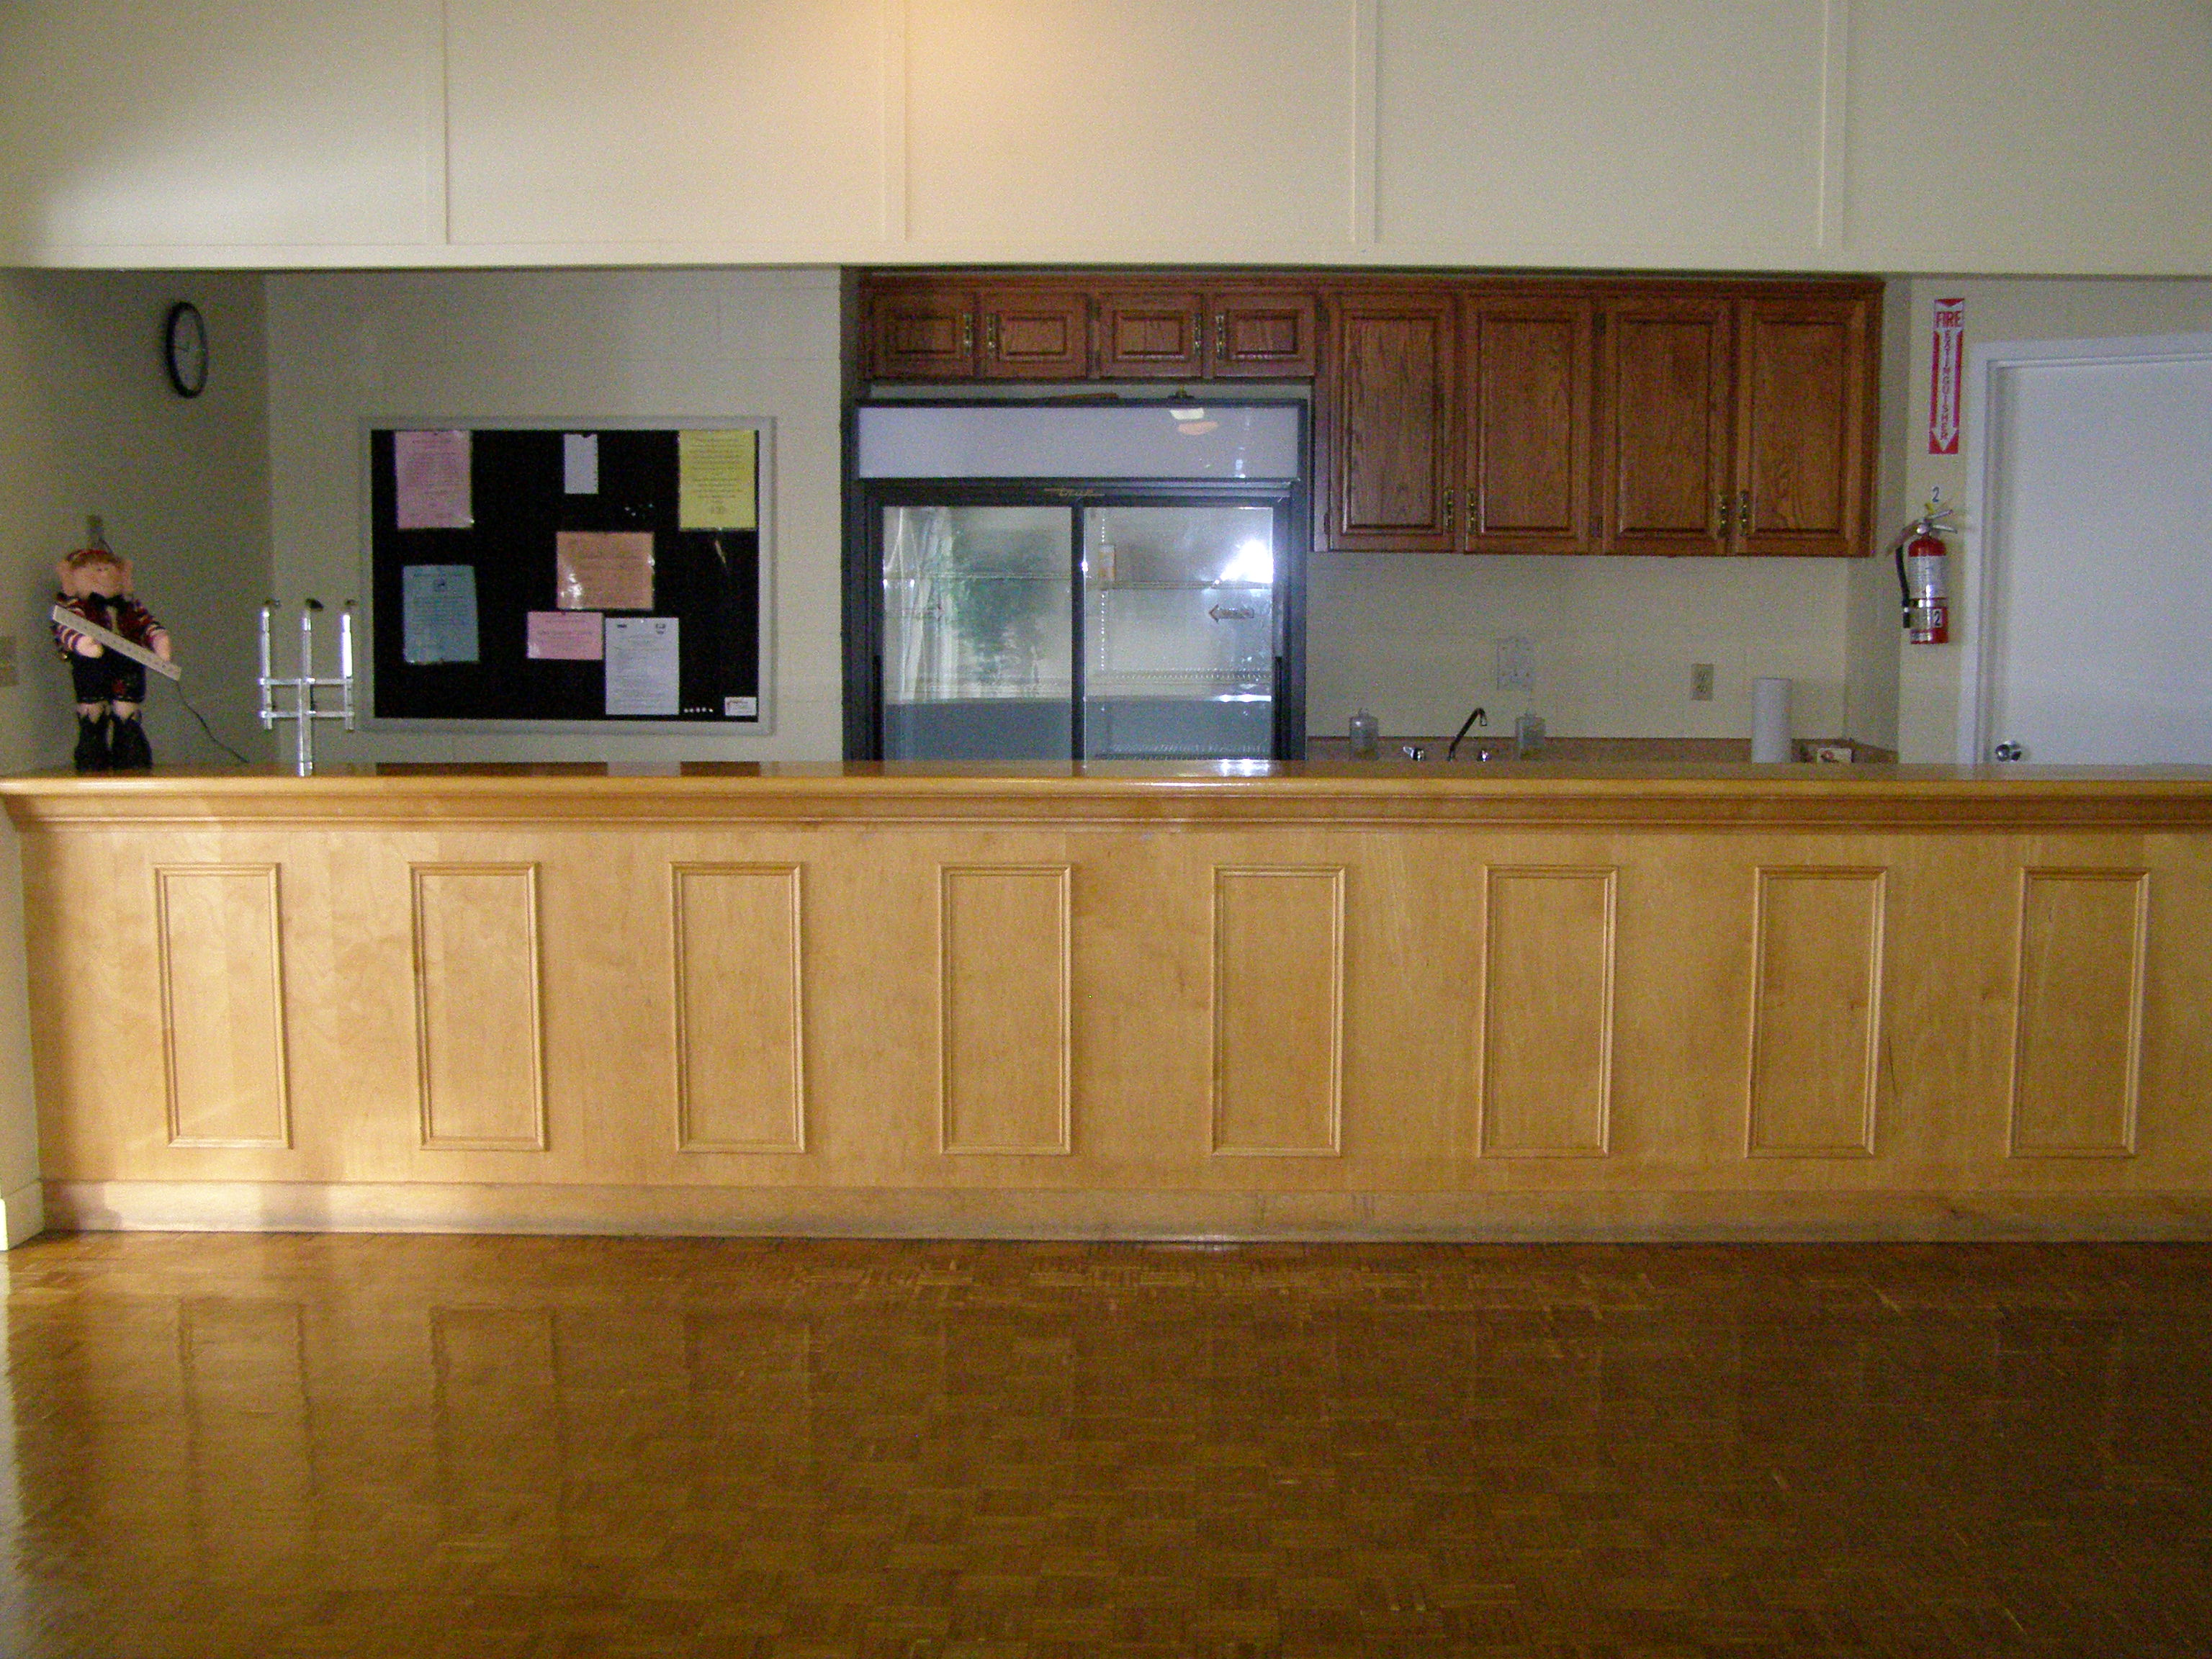 Mono Community Centre Banquet Room Bar